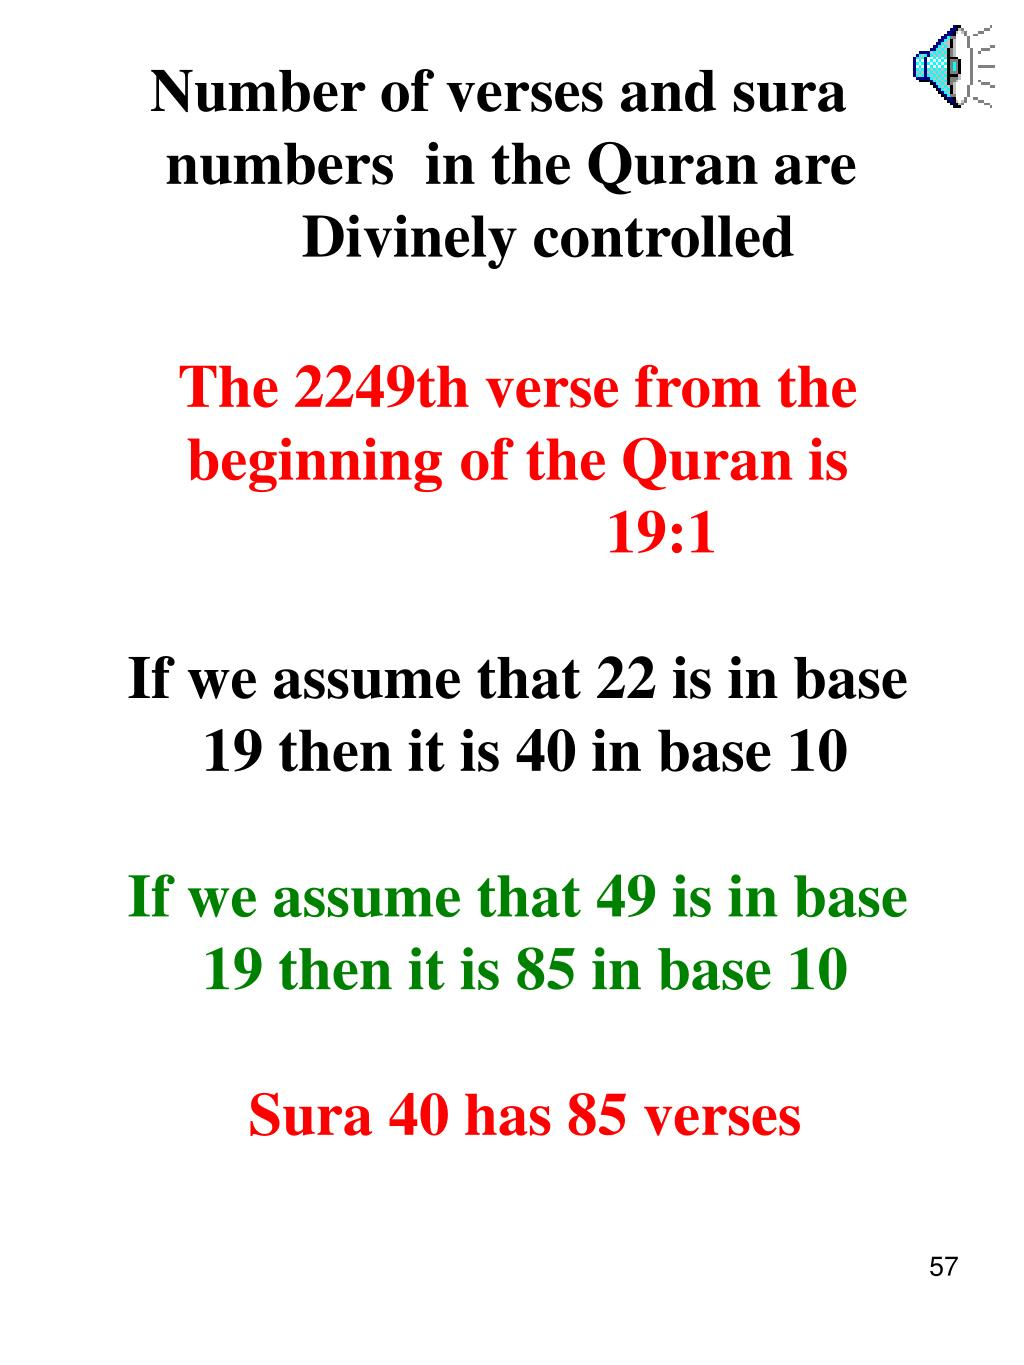 Number of verses and sura